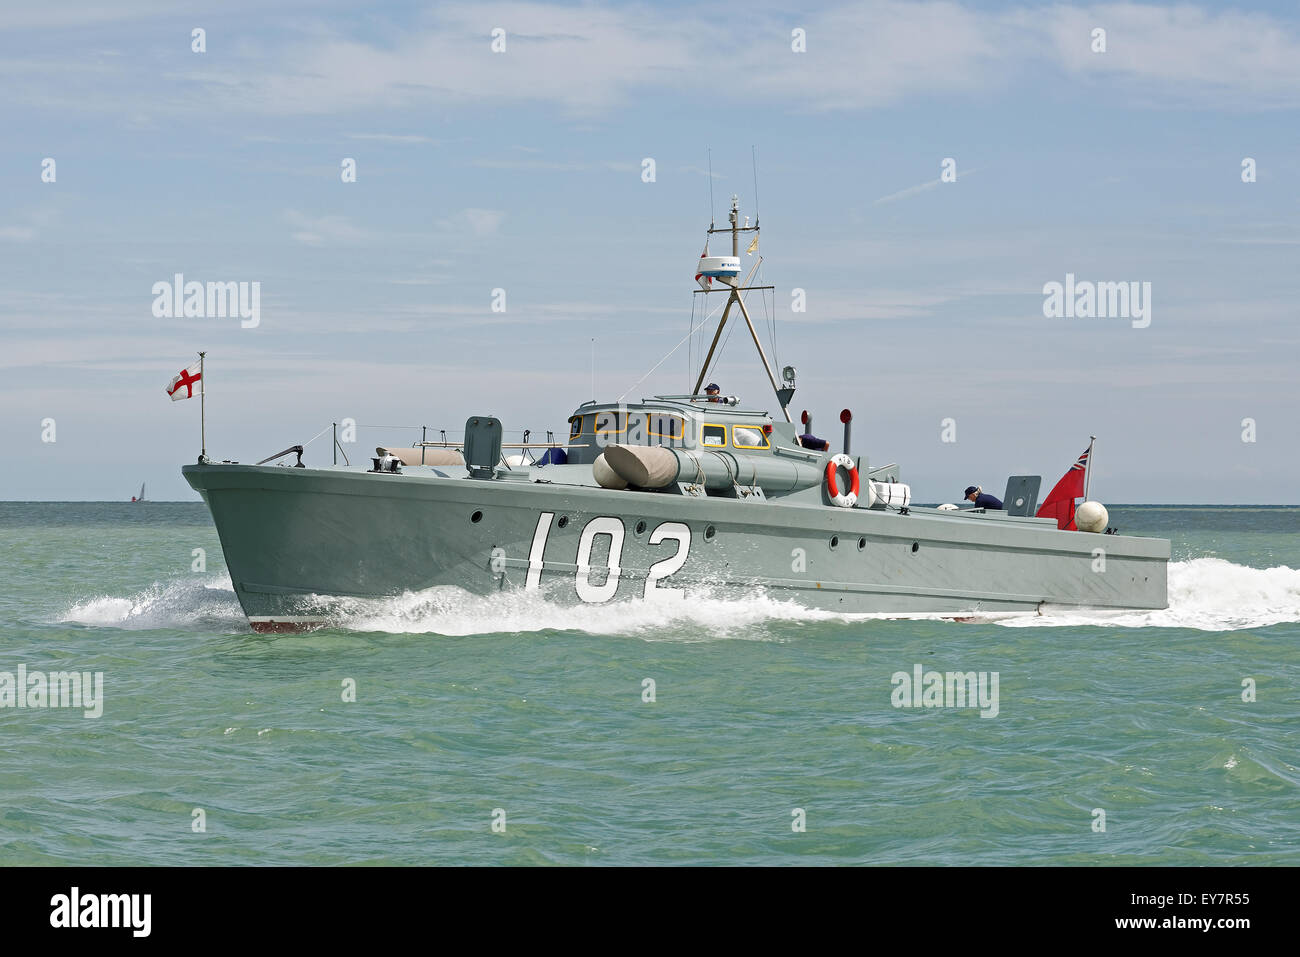 MTB 102 - built in 1937 - is one of the few remaining WW2 motor torpedo boats. - Stock Image